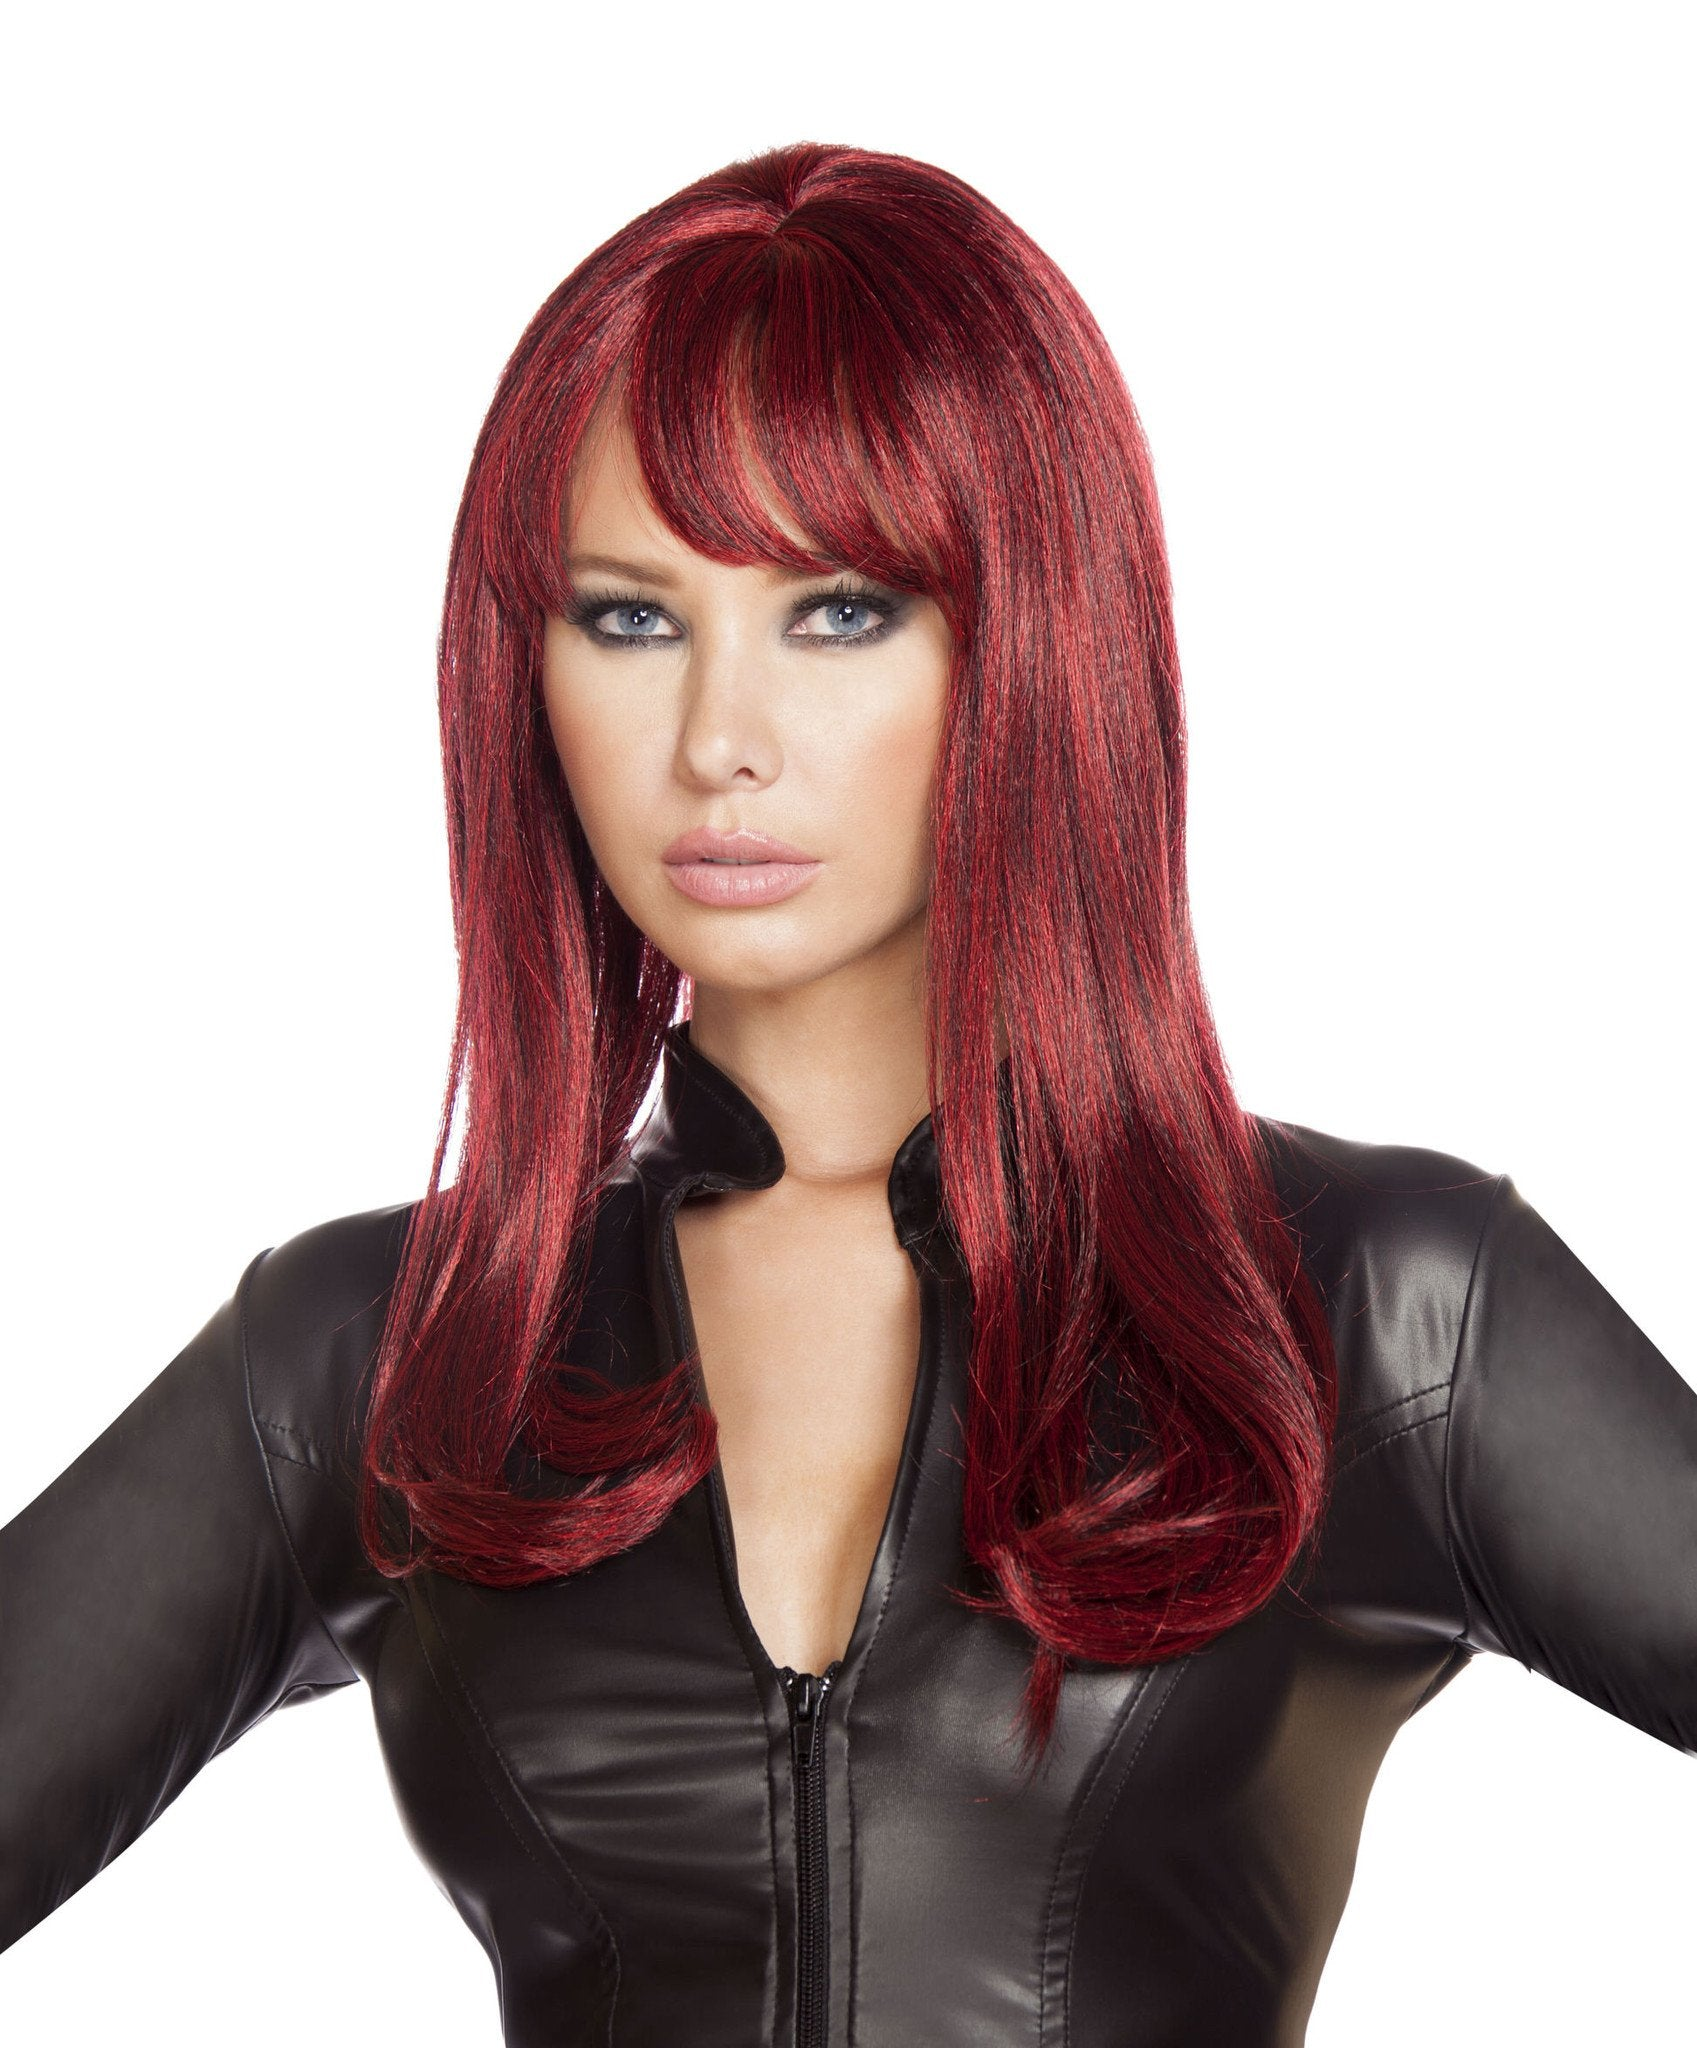 Buy Burgundy Wig from Rave Fix for $34.99 with Same Day Shipping Designed by Roma Costume, Inc. WIG103-Burg-O/S